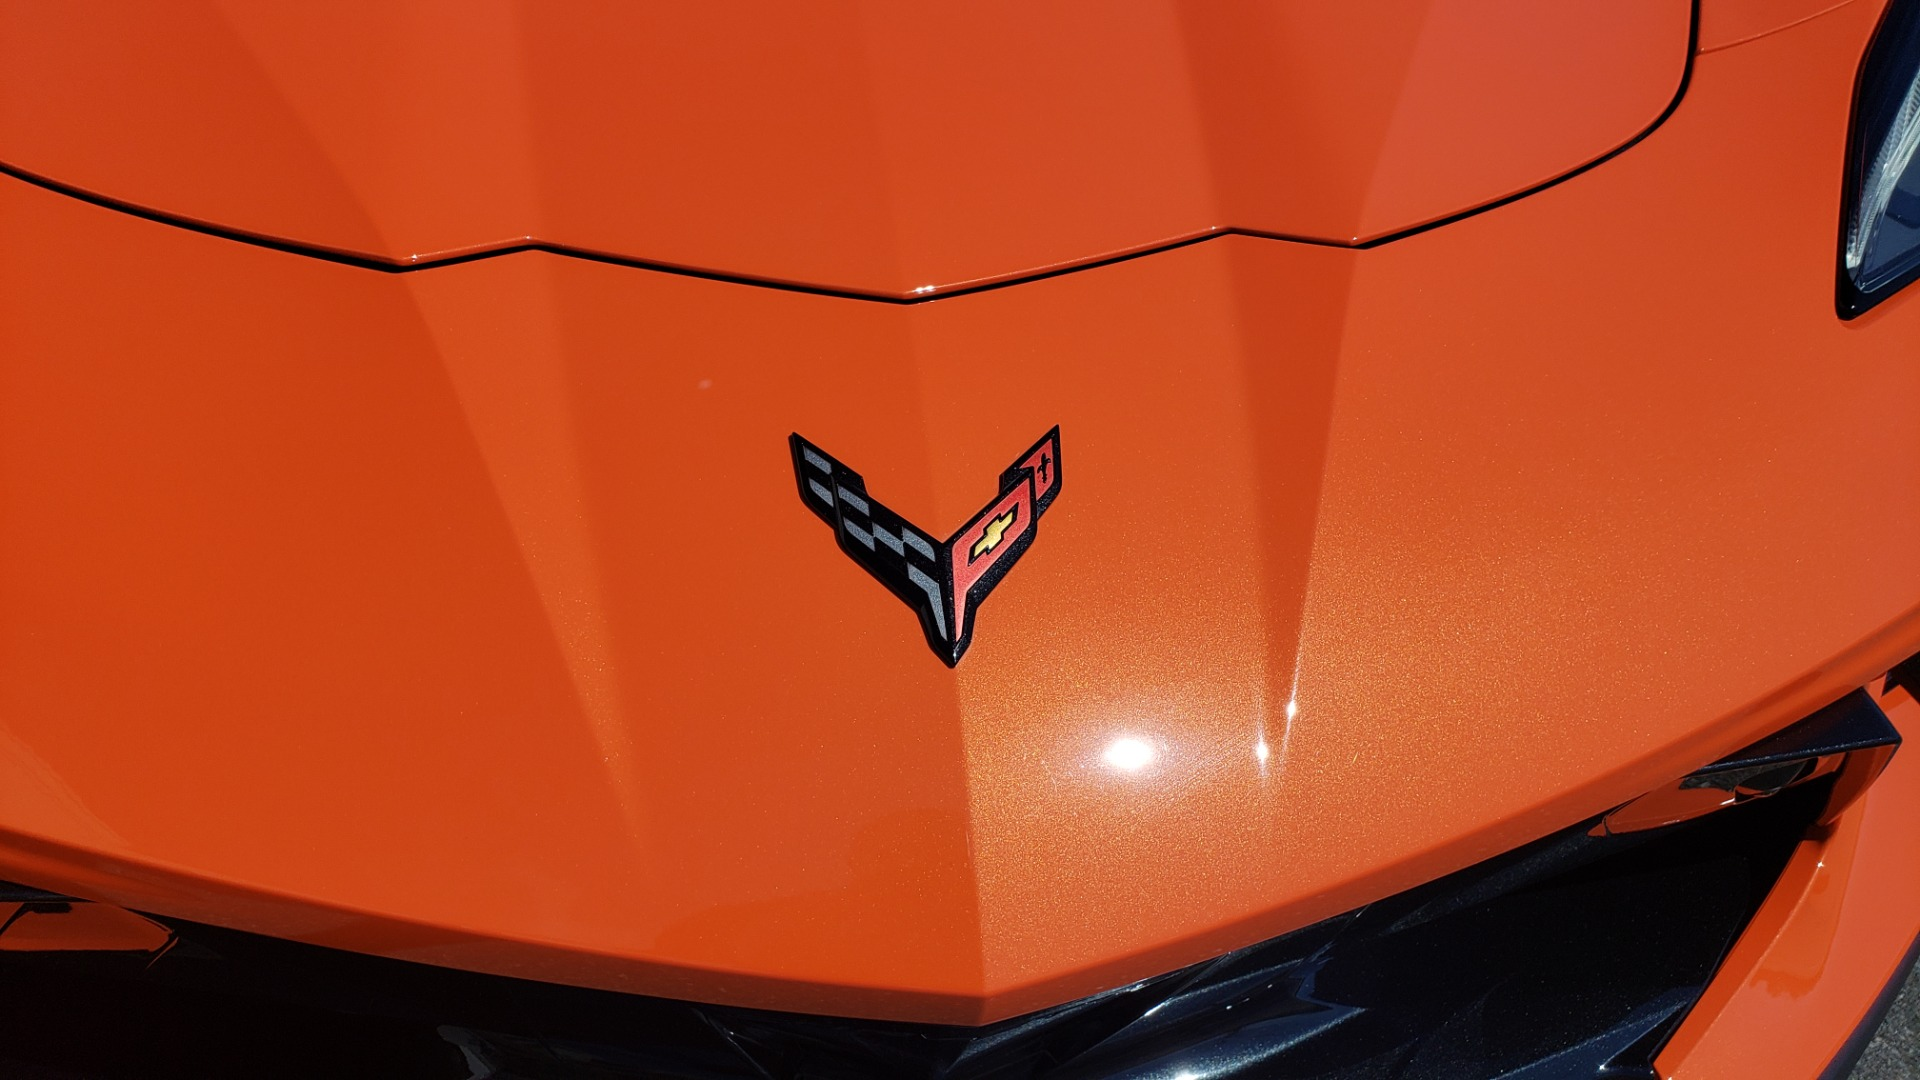 Used 2020 Chevrolet CORVETTE C8 STINGRAY 3LT COUPE / NAV / BOSE / CAMERA / LIKE NEW for sale Sold at Formula Imports in Charlotte NC 28227 37